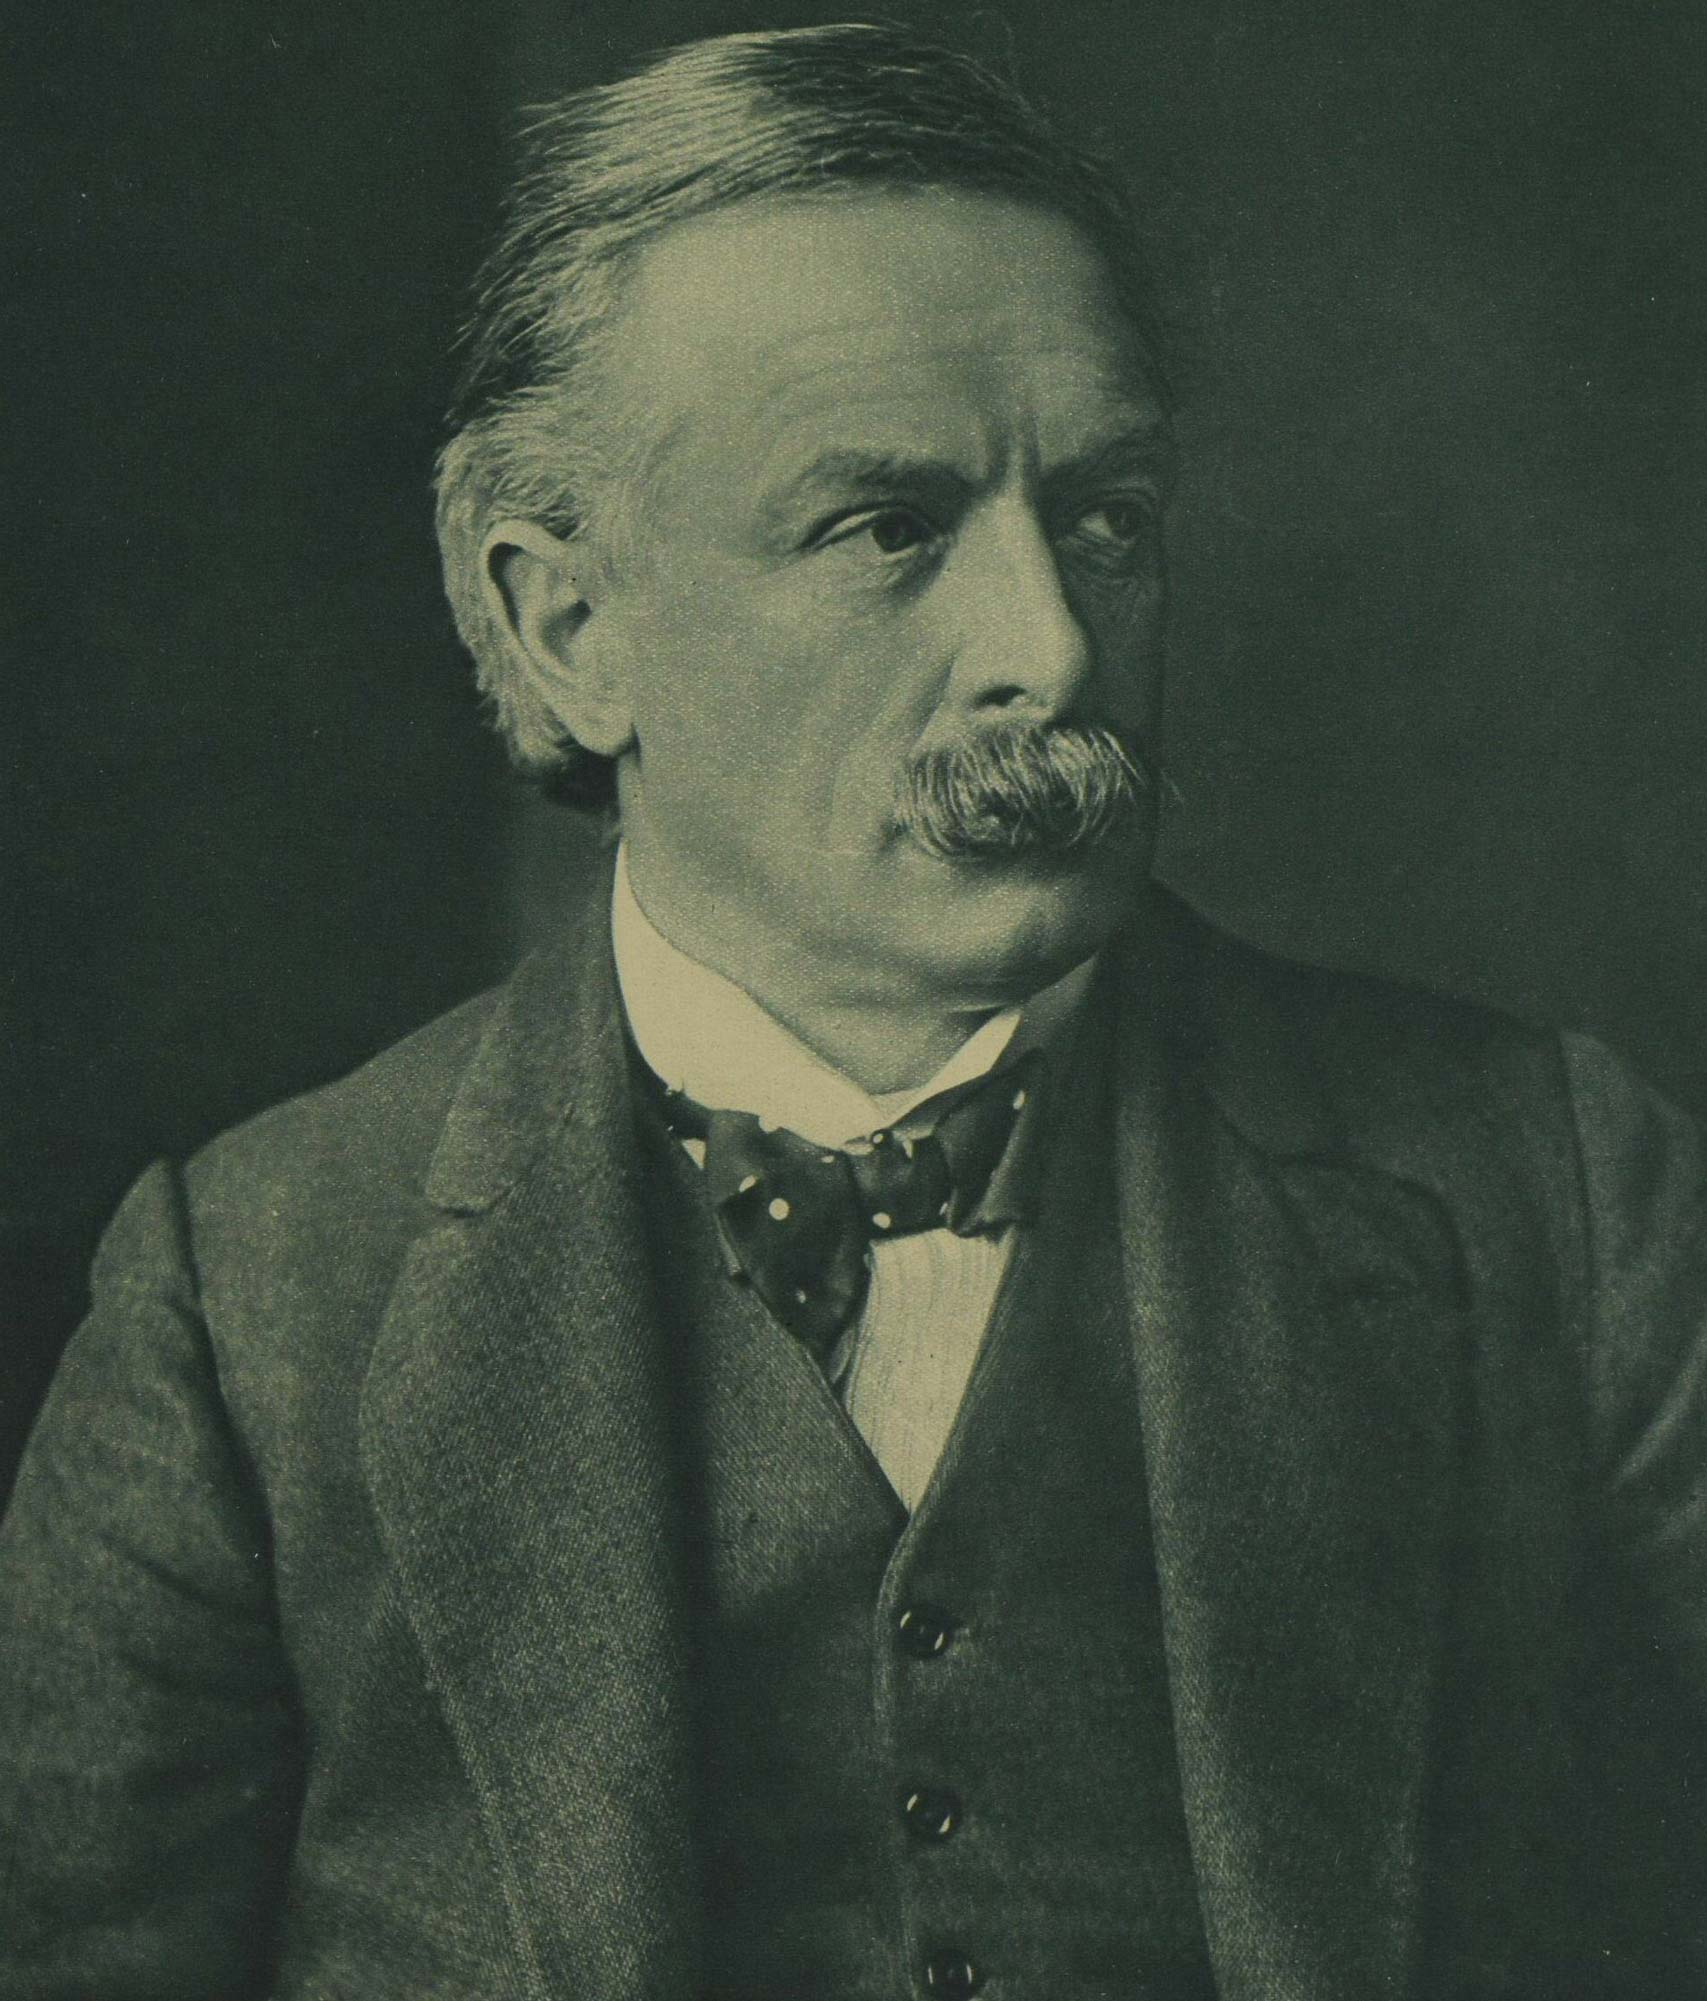 Photograph of David Lloyd George becomes new Prime Minister